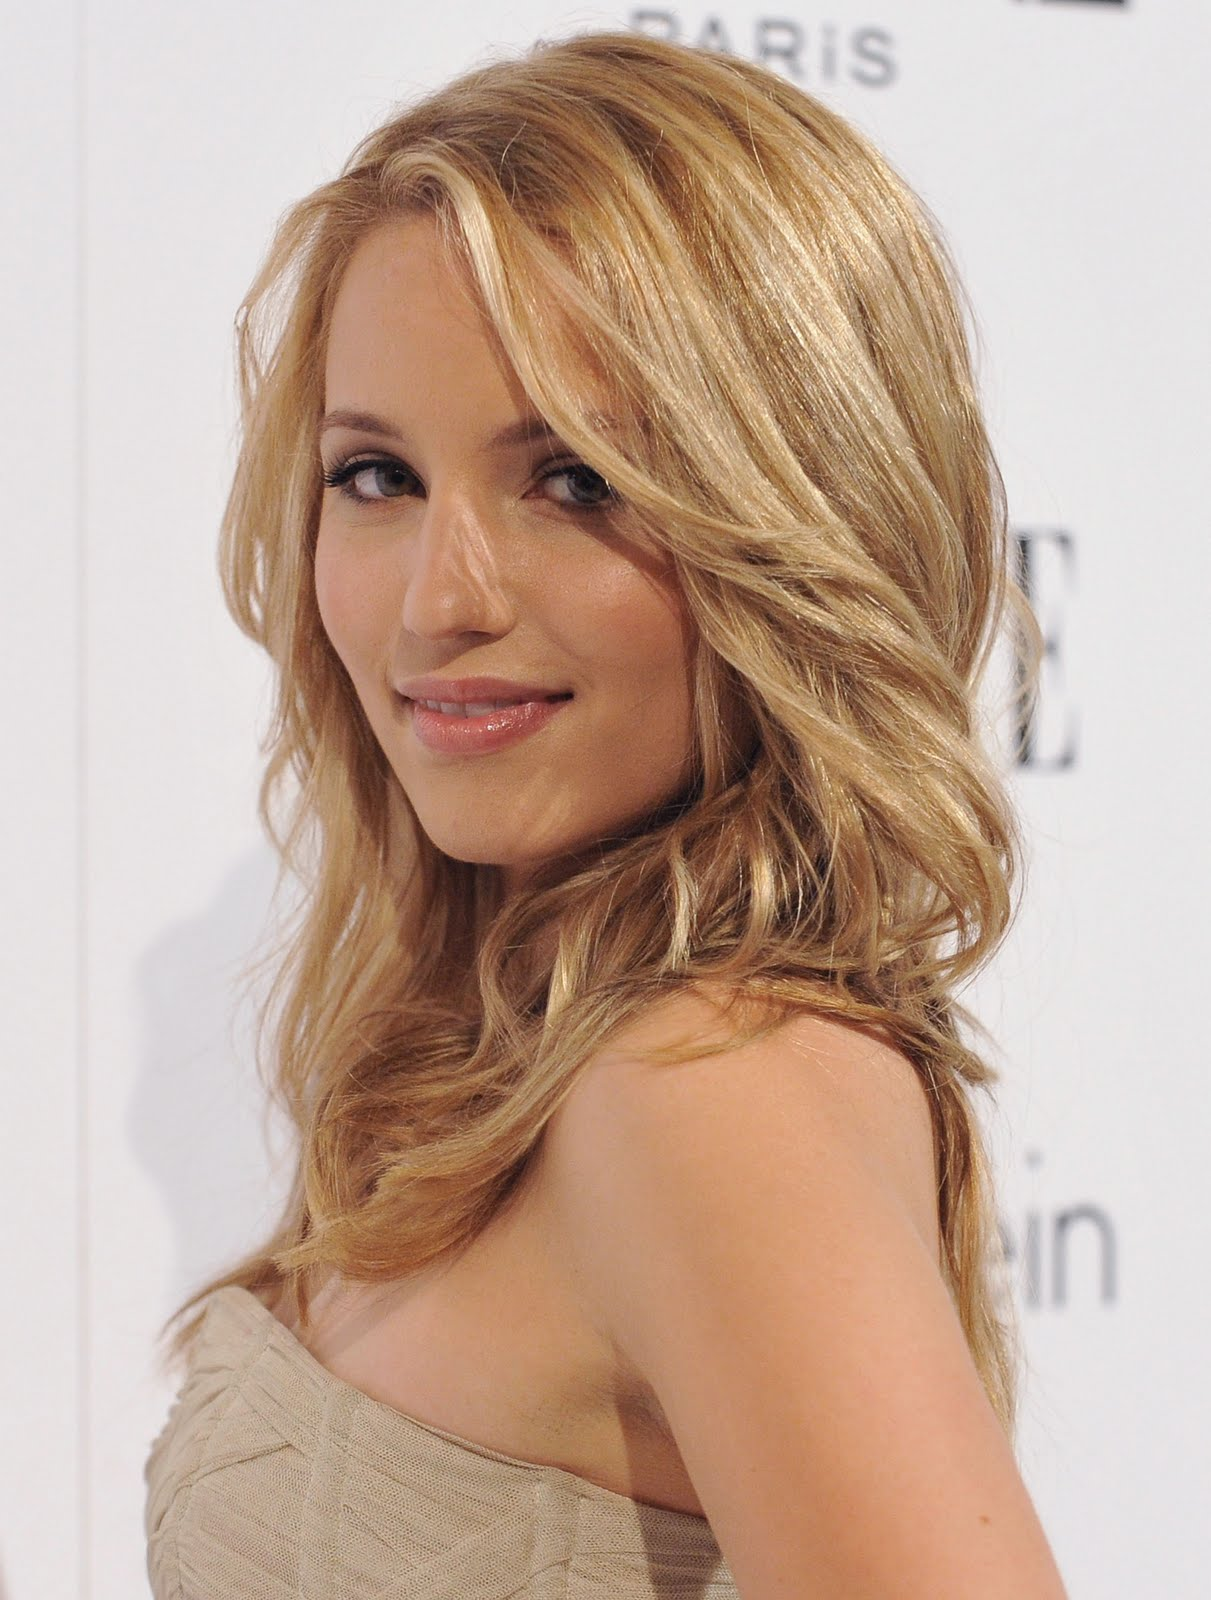 Dianna Agron Biography Fashion And Styles